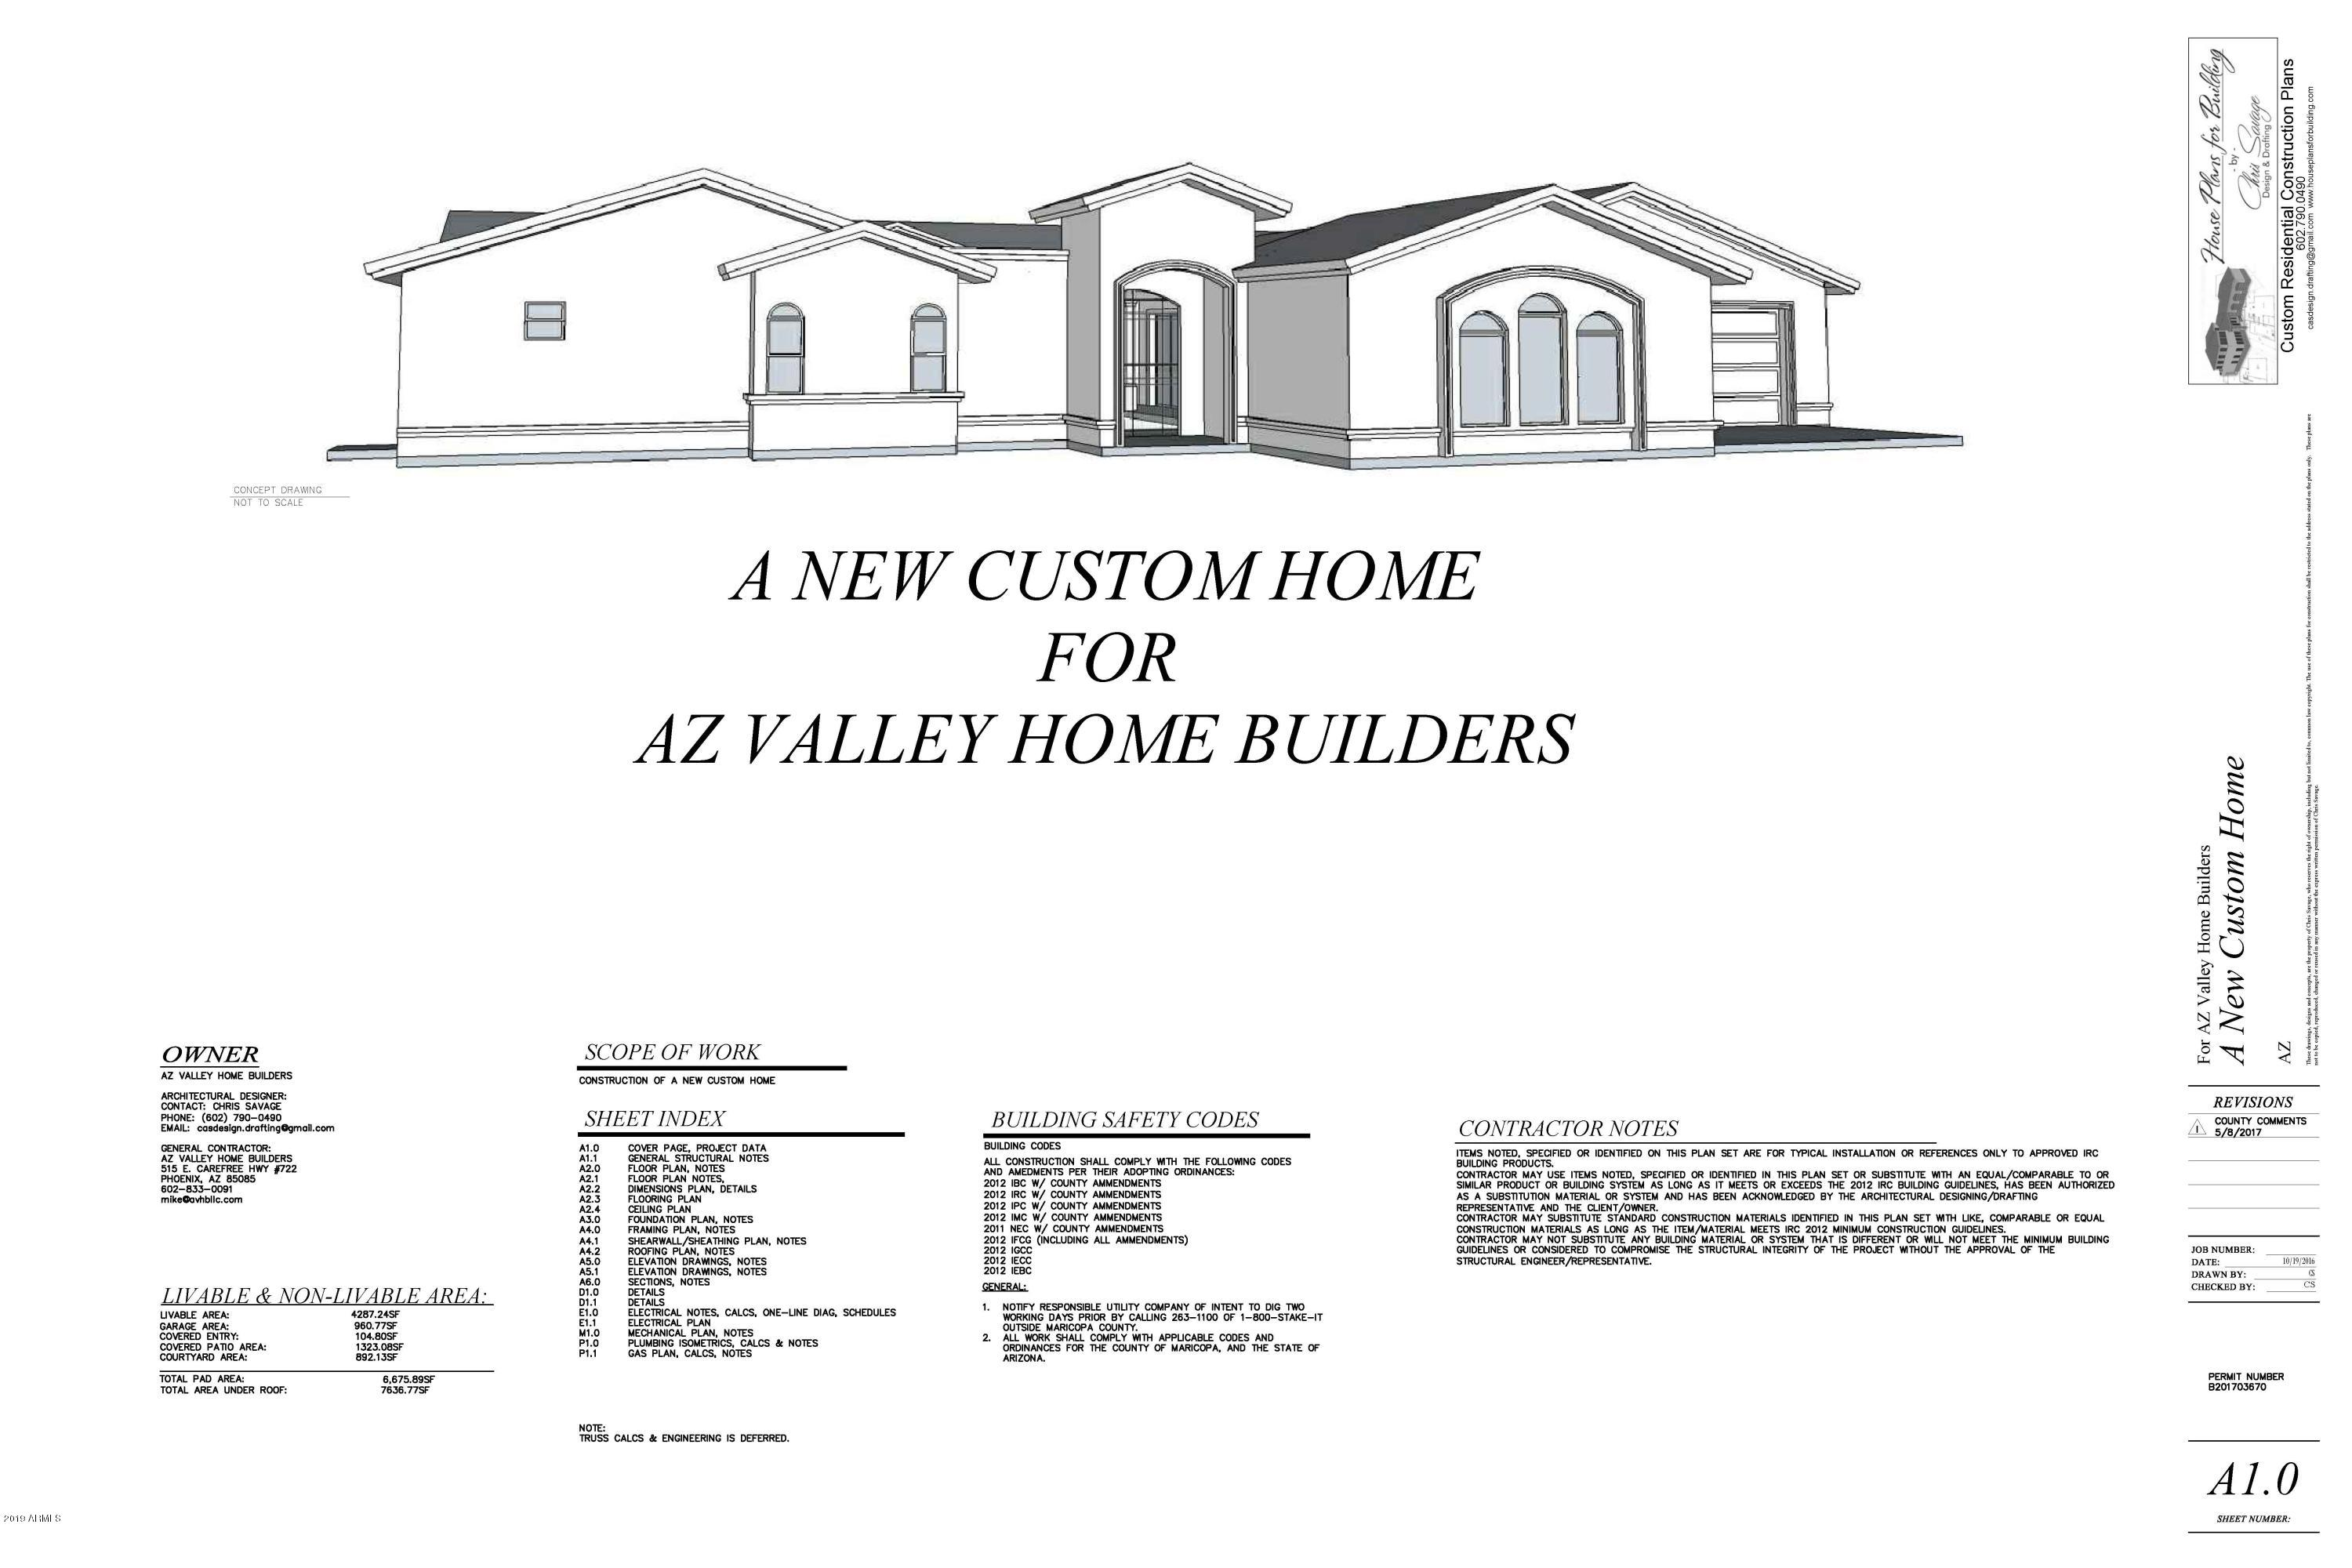 35223 N 7TH Street, Anthem, Arizona